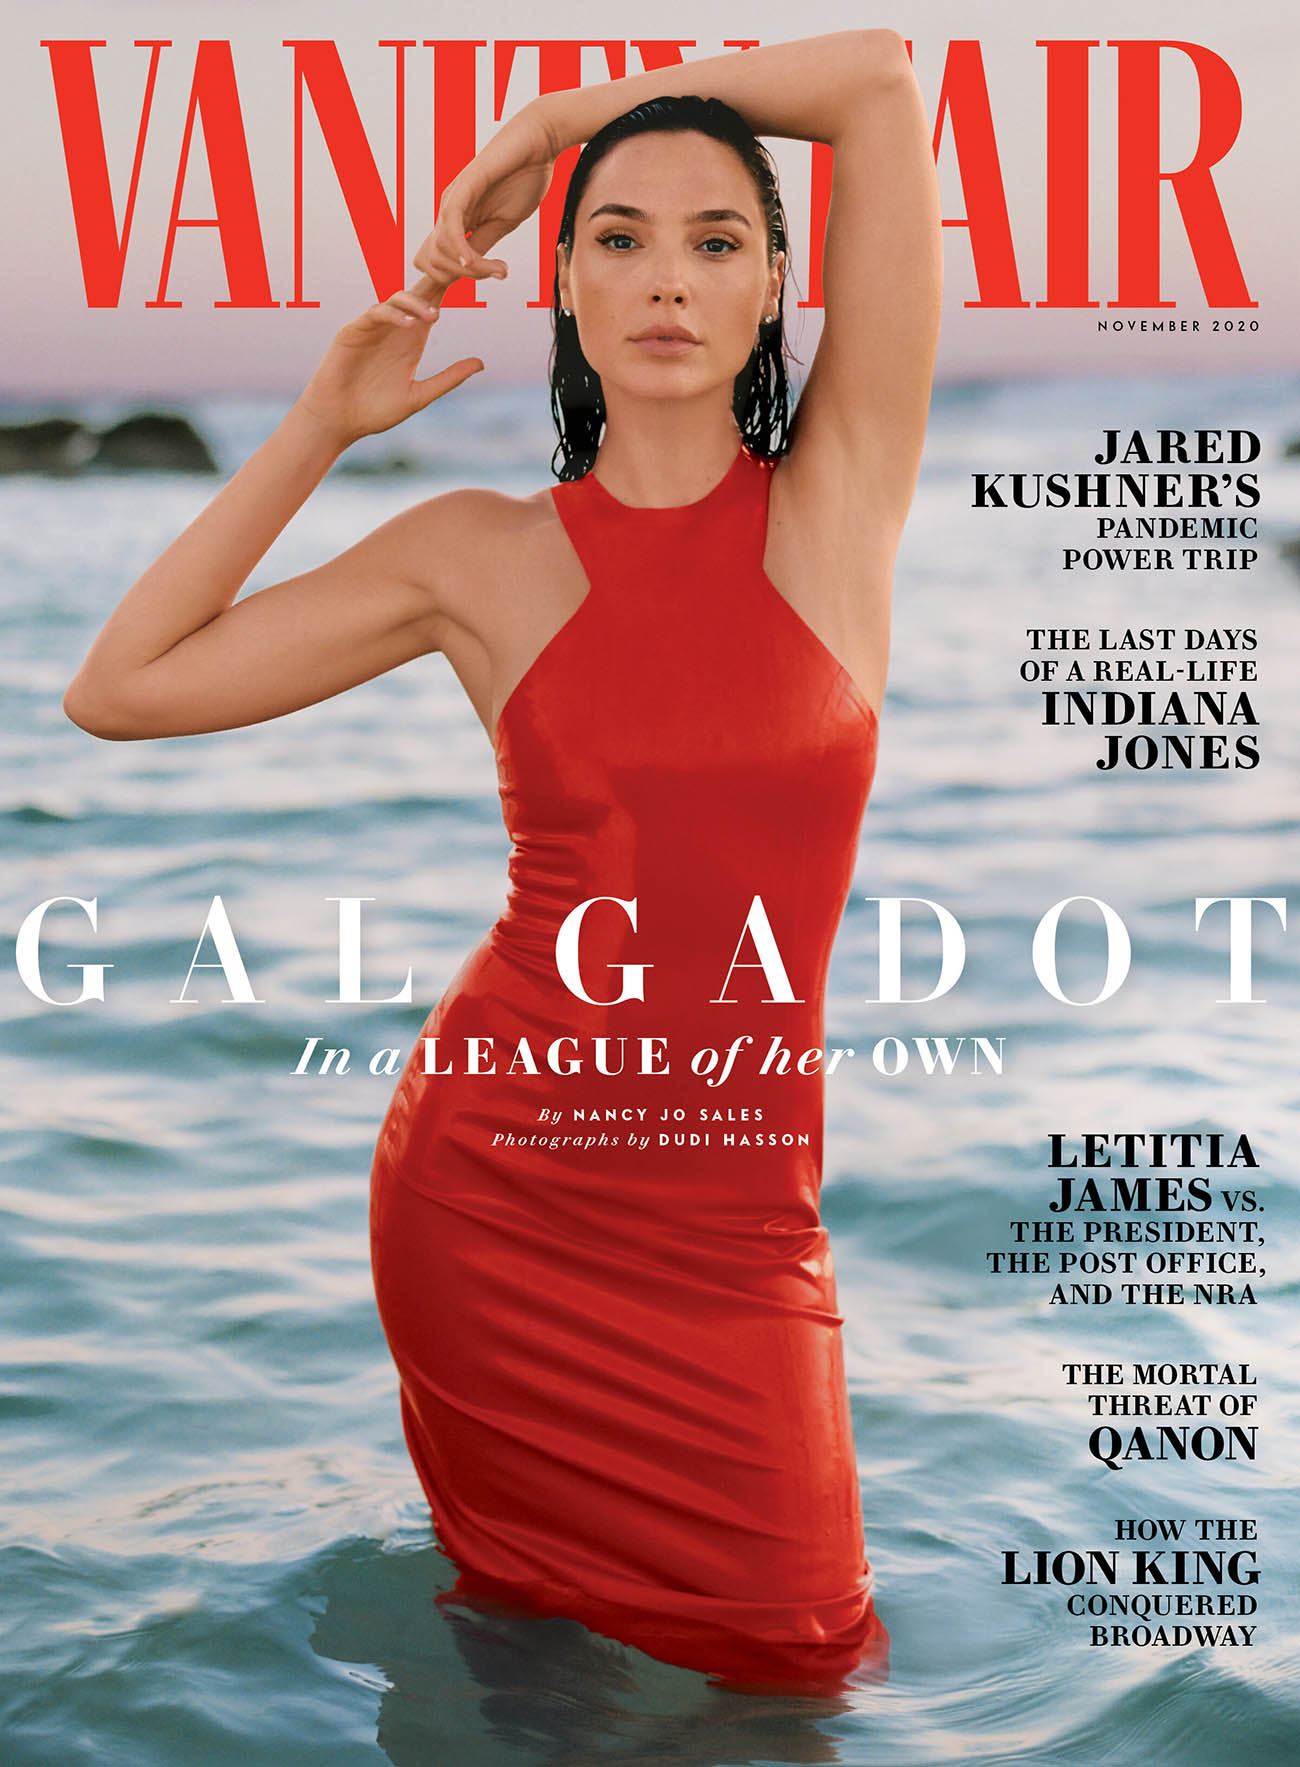 Gal Gadot covers Vanity Fair November 2020 by Dudi Hasson